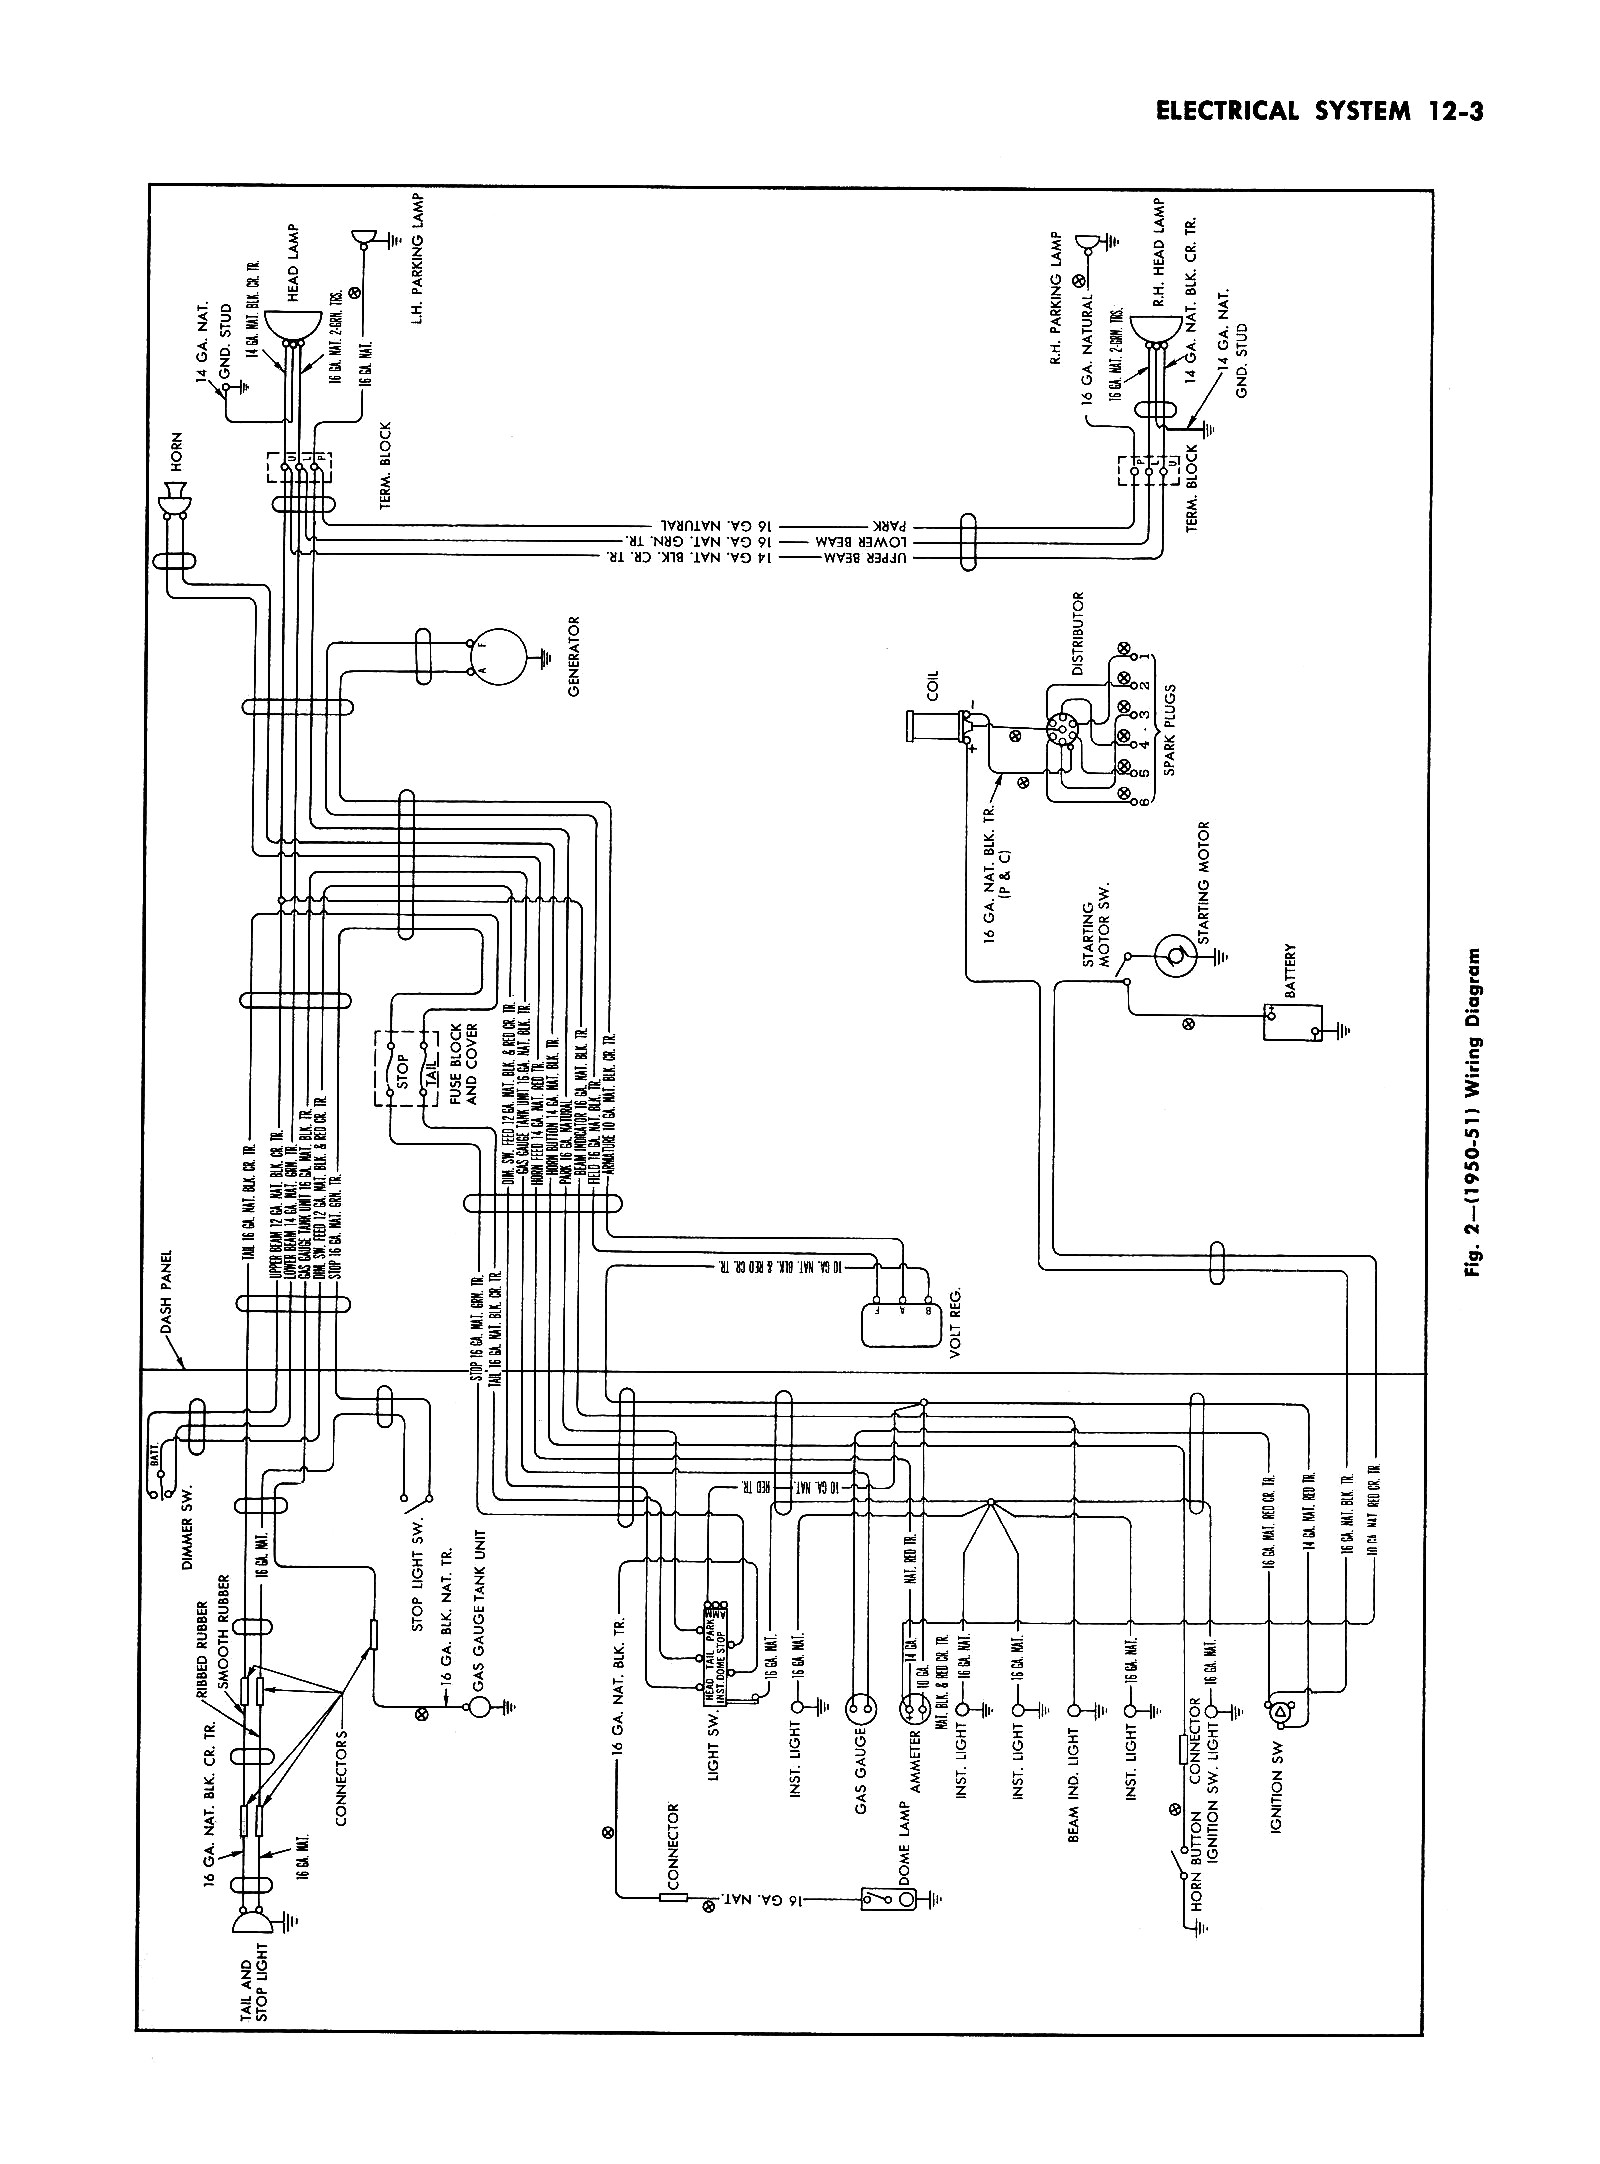 hight resolution of 52 cadillac wiring diagram wiring diagram paper 52 cadillac wiring diagram wiring diagram for you 52